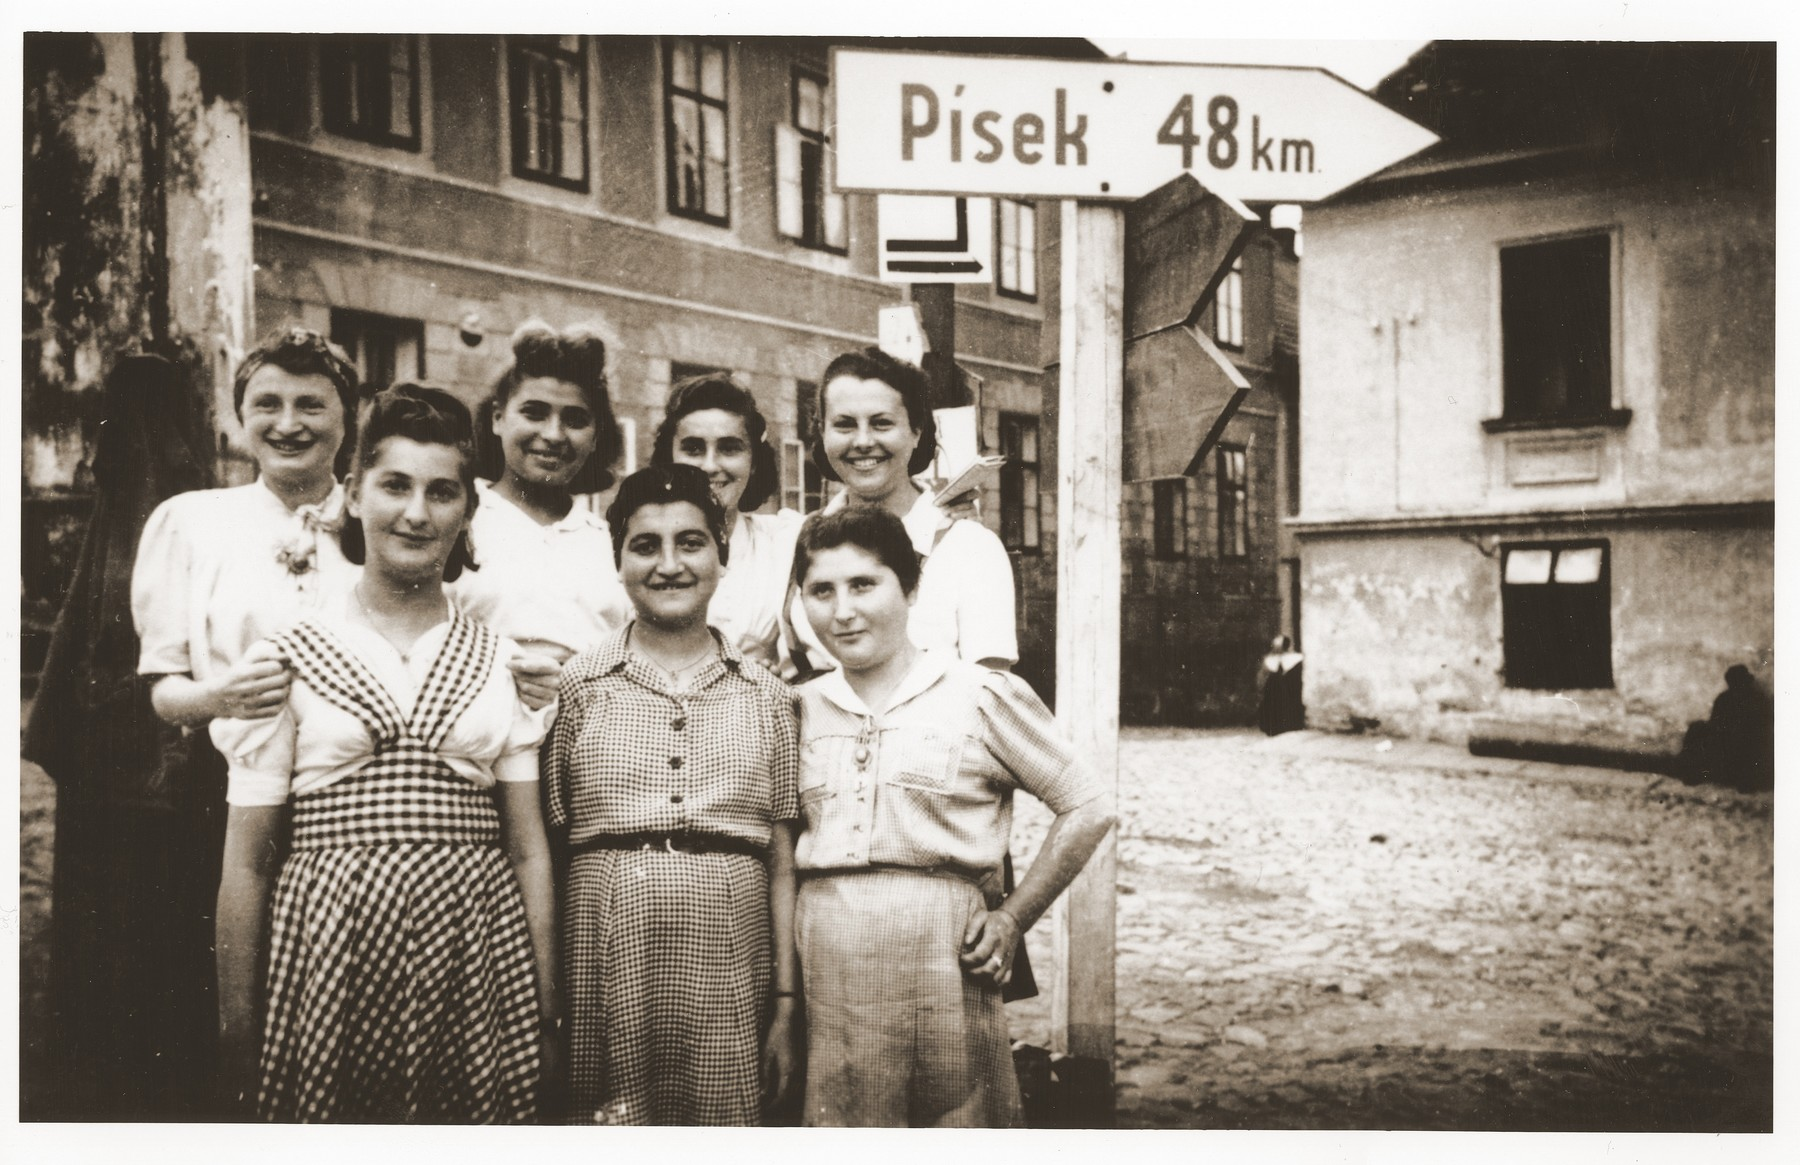 Seven of the approximately 150 survivors of a 500 km. death march that ended in Volary.  These Jewish survivors are recuperating in Prachatice, near Volary.   Pictured from left to right in the front row are: Hela Malinowicz (Malnowicer Bleeman) (from Dabrowa); Rachela Raabe; and Regina Szapelska (from Sosnowiec).   In the back row, left to right are: Hela Dancygier; Lilka Silbiger (from Oswiecim); Fela Lewy; and Fela Zyngler (from Lodz).